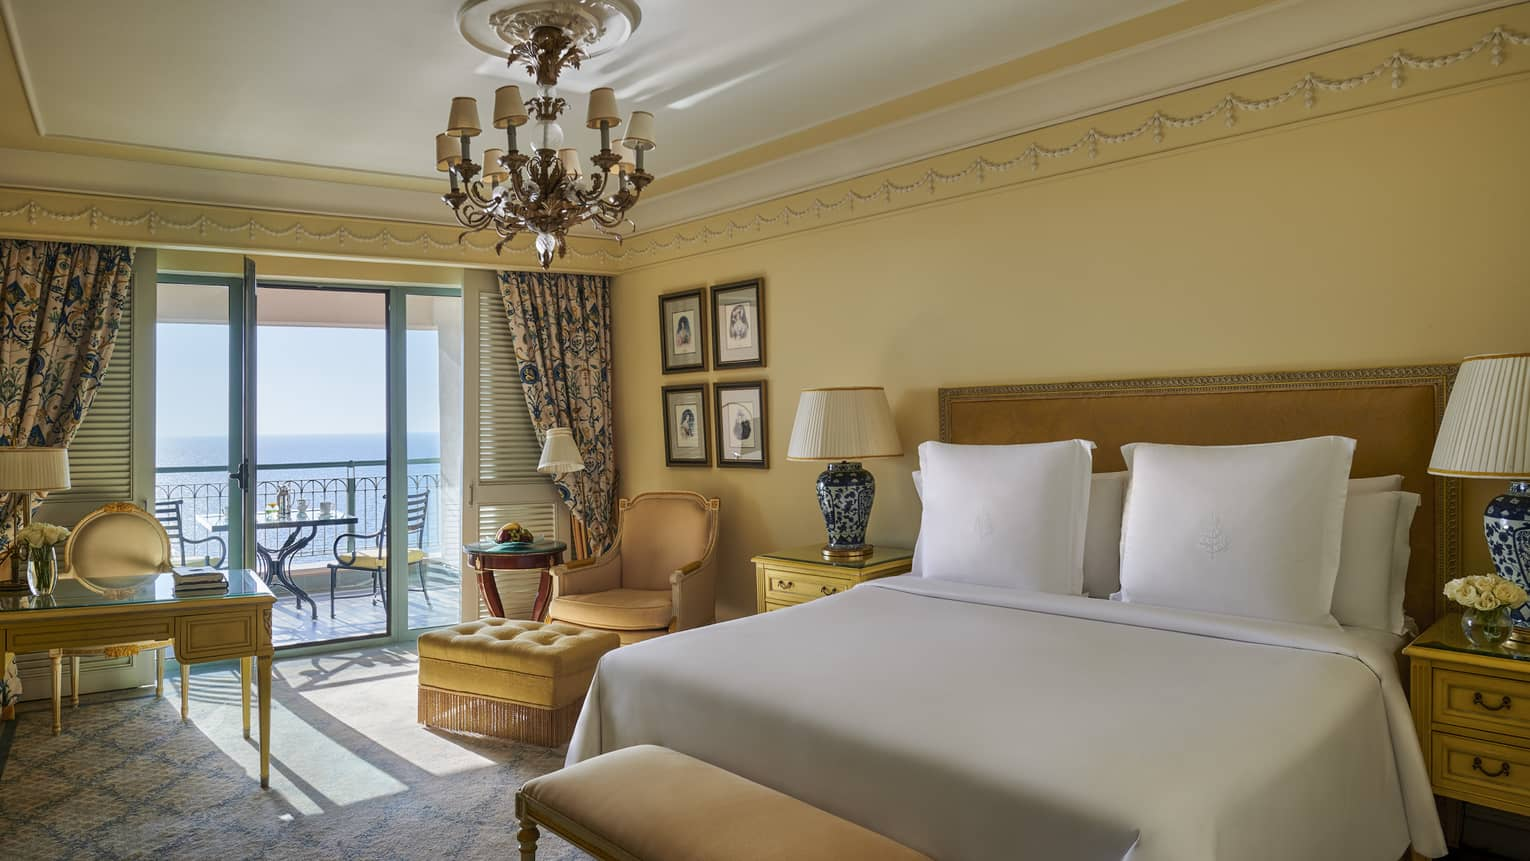 Elegant suite with vintage furniture, drapes framing window leading to balcony and sea views